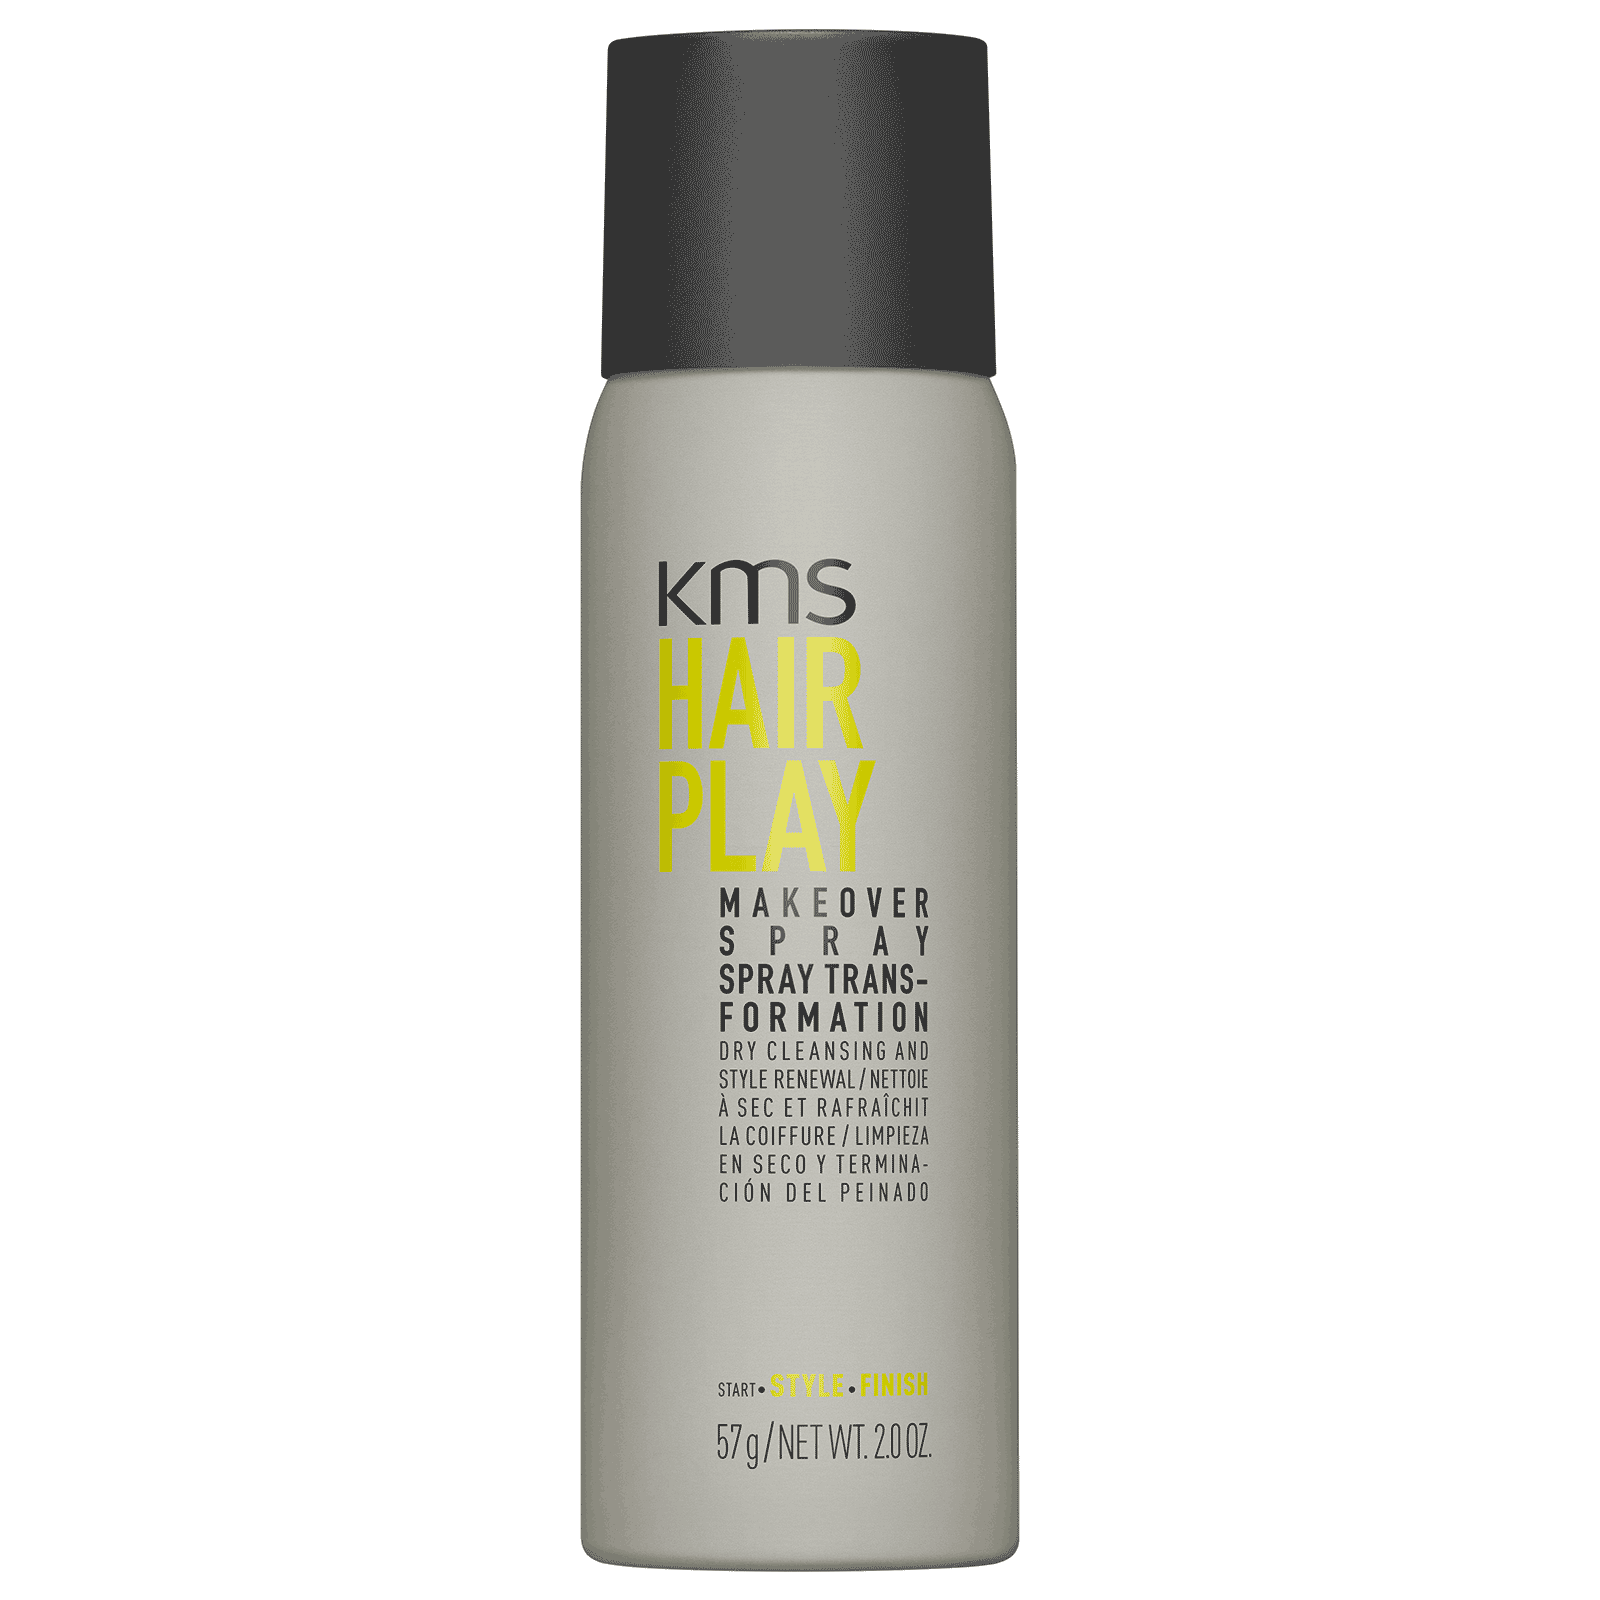 HAIRPLAY makeover spray travel size